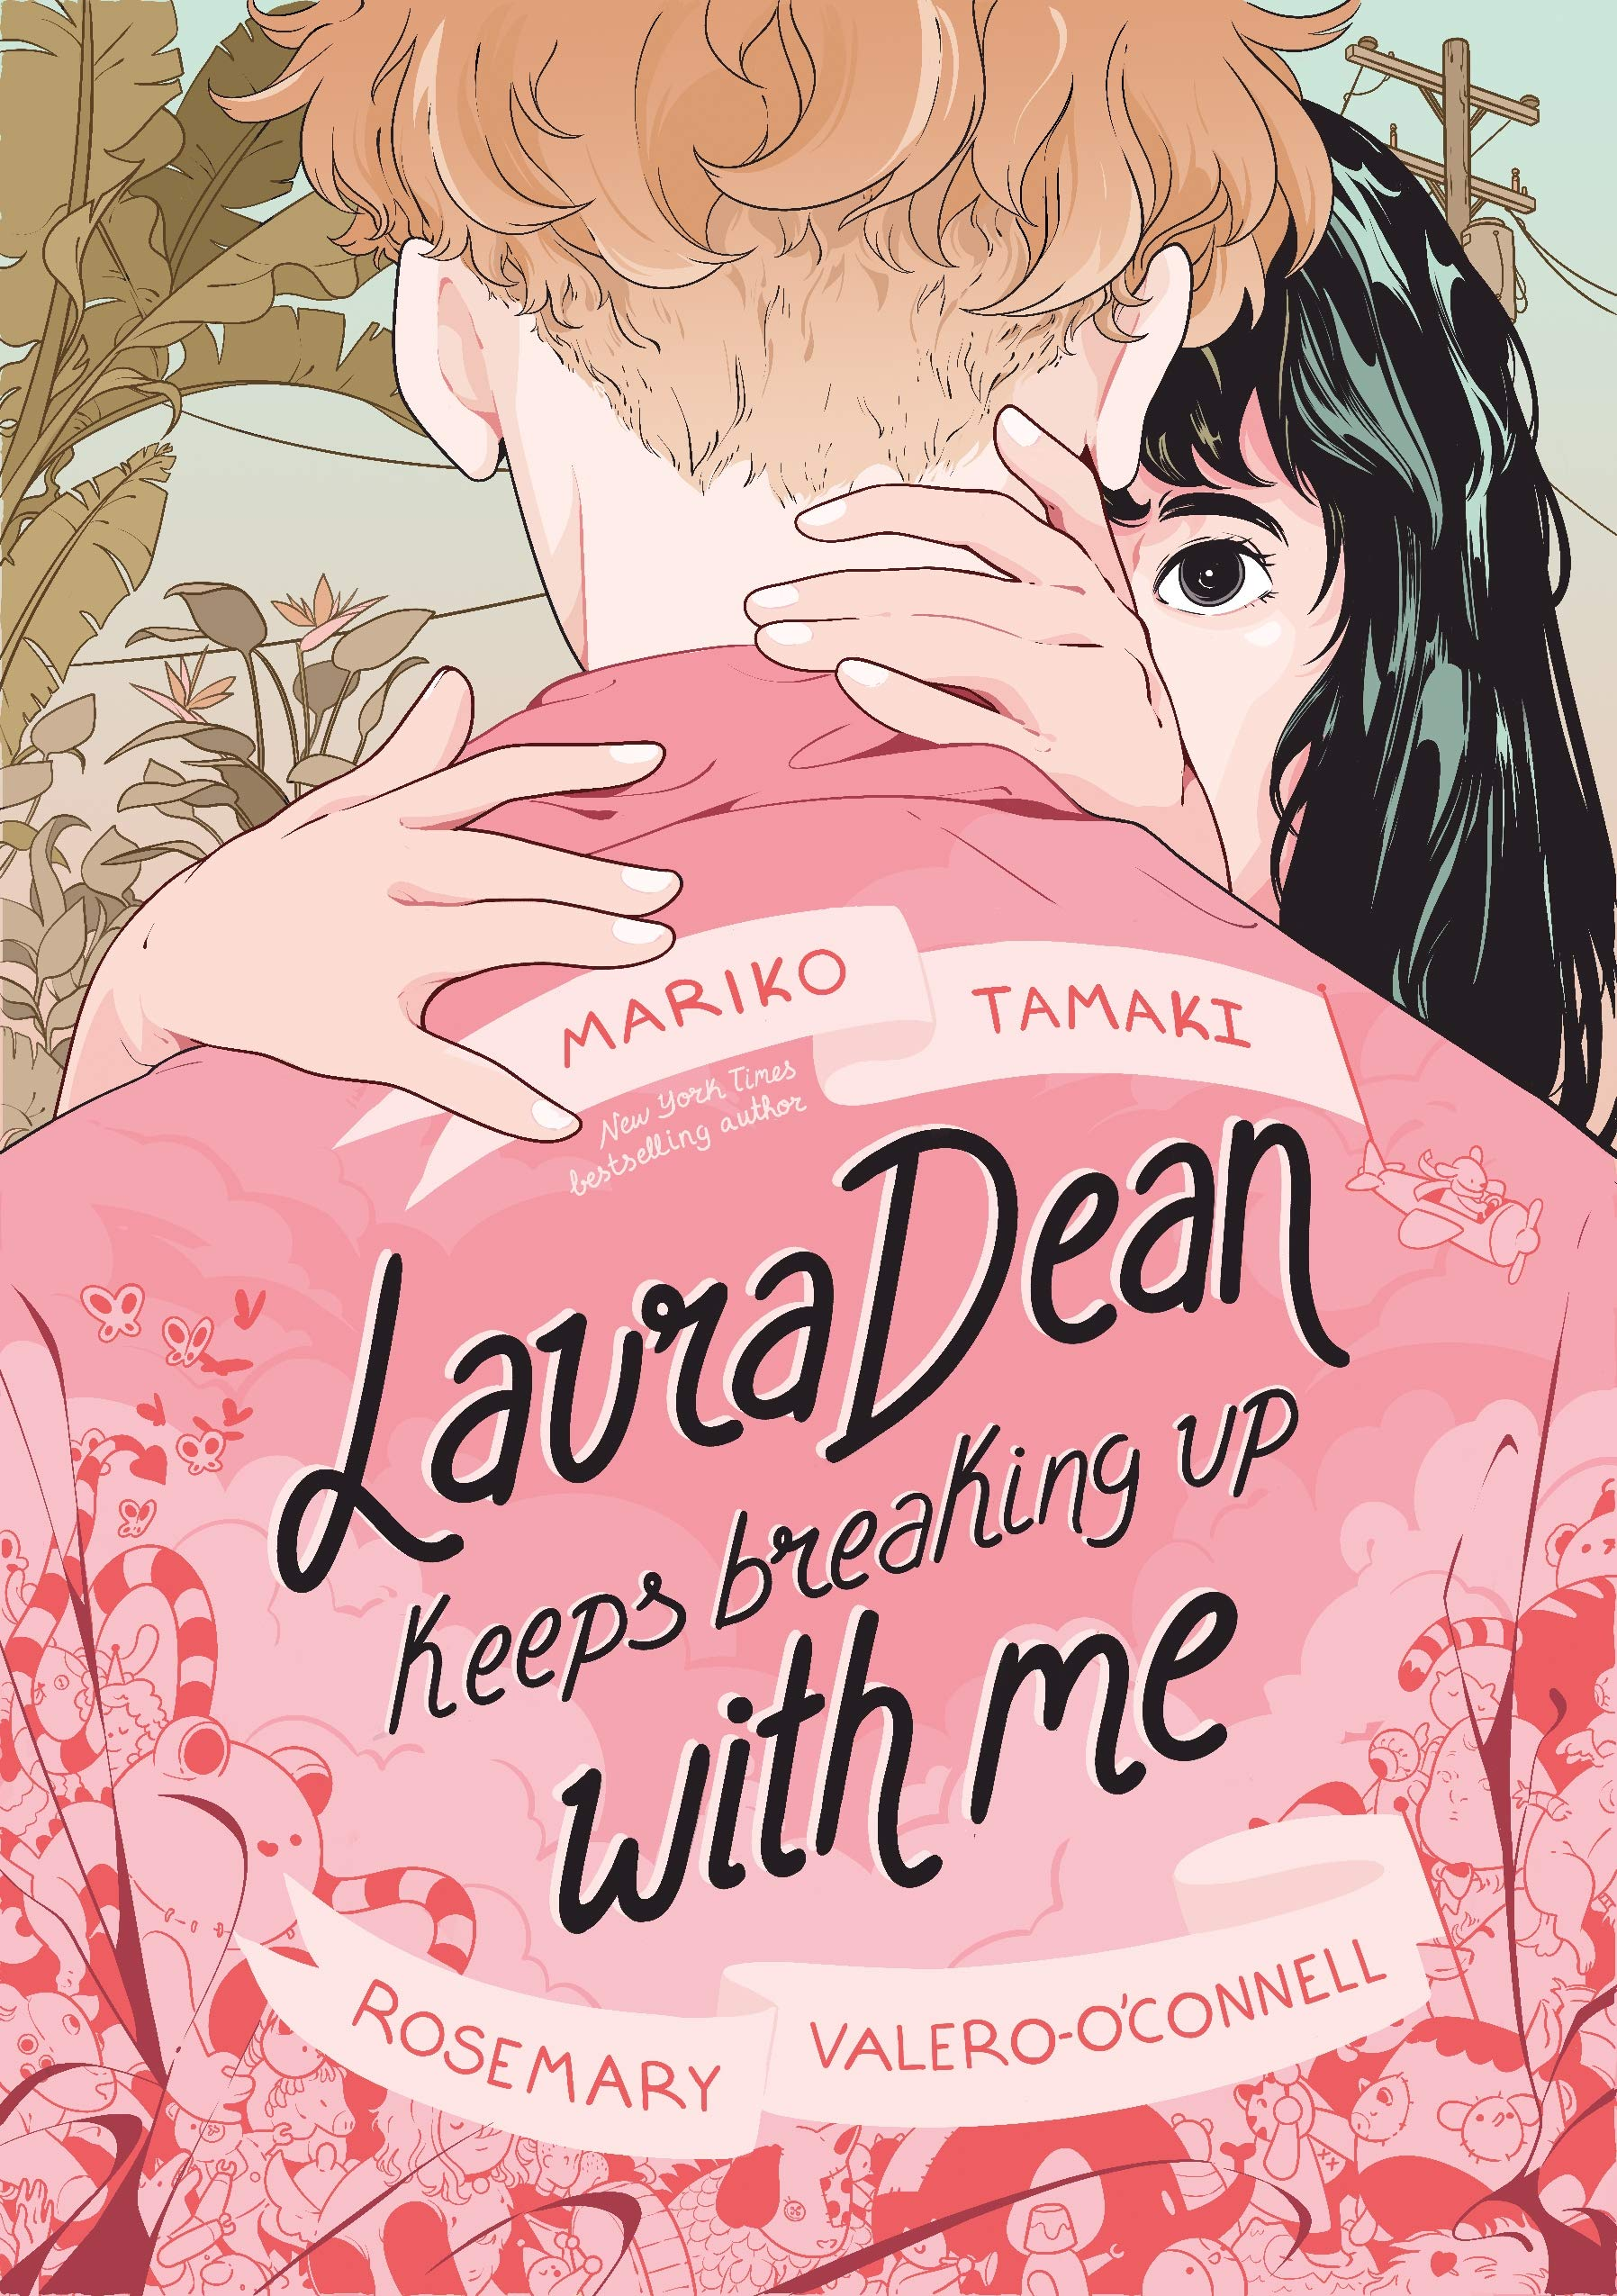 Best Comics of 2019: Laura Dean Keeps Breaking Up With Me